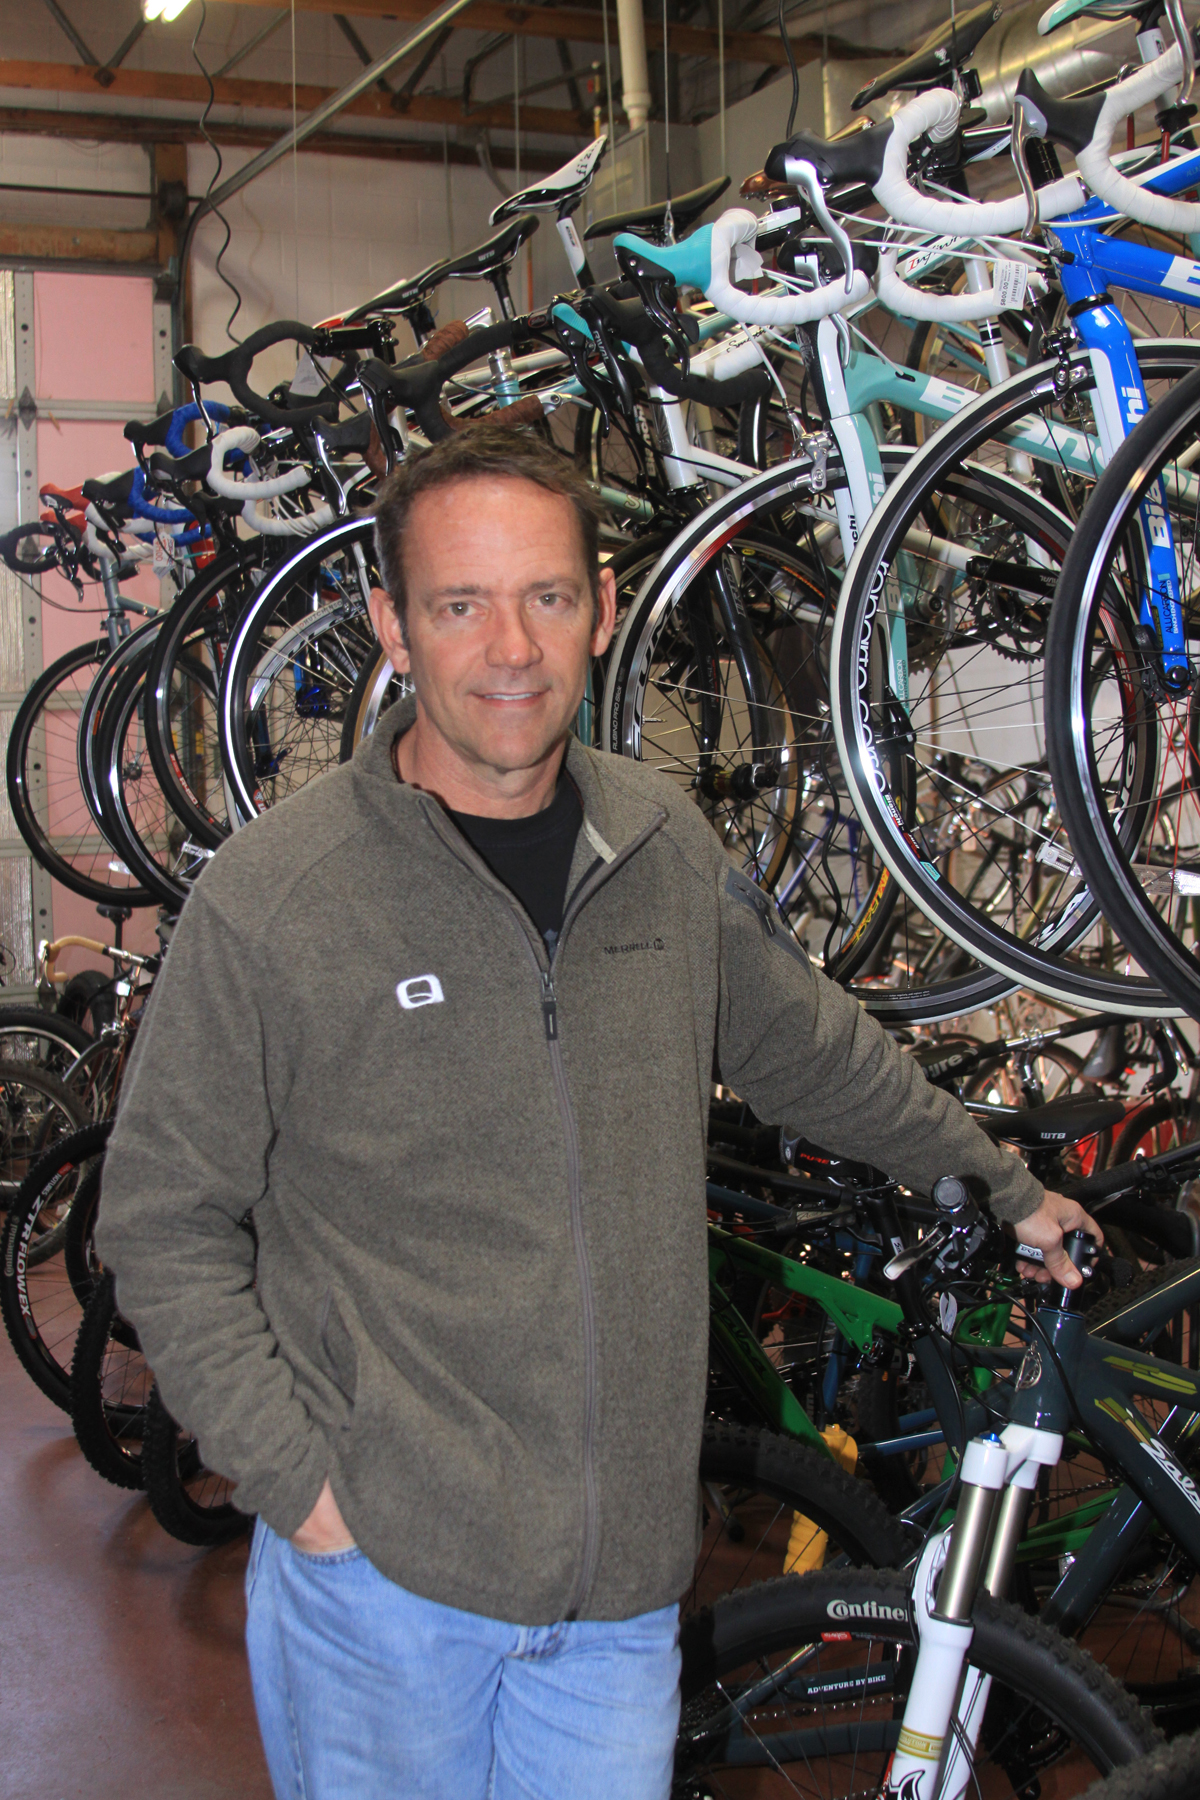 Mark Kennedy, owner of Salt Lake City's Saturday Cycles. Photo by Dave Iltis